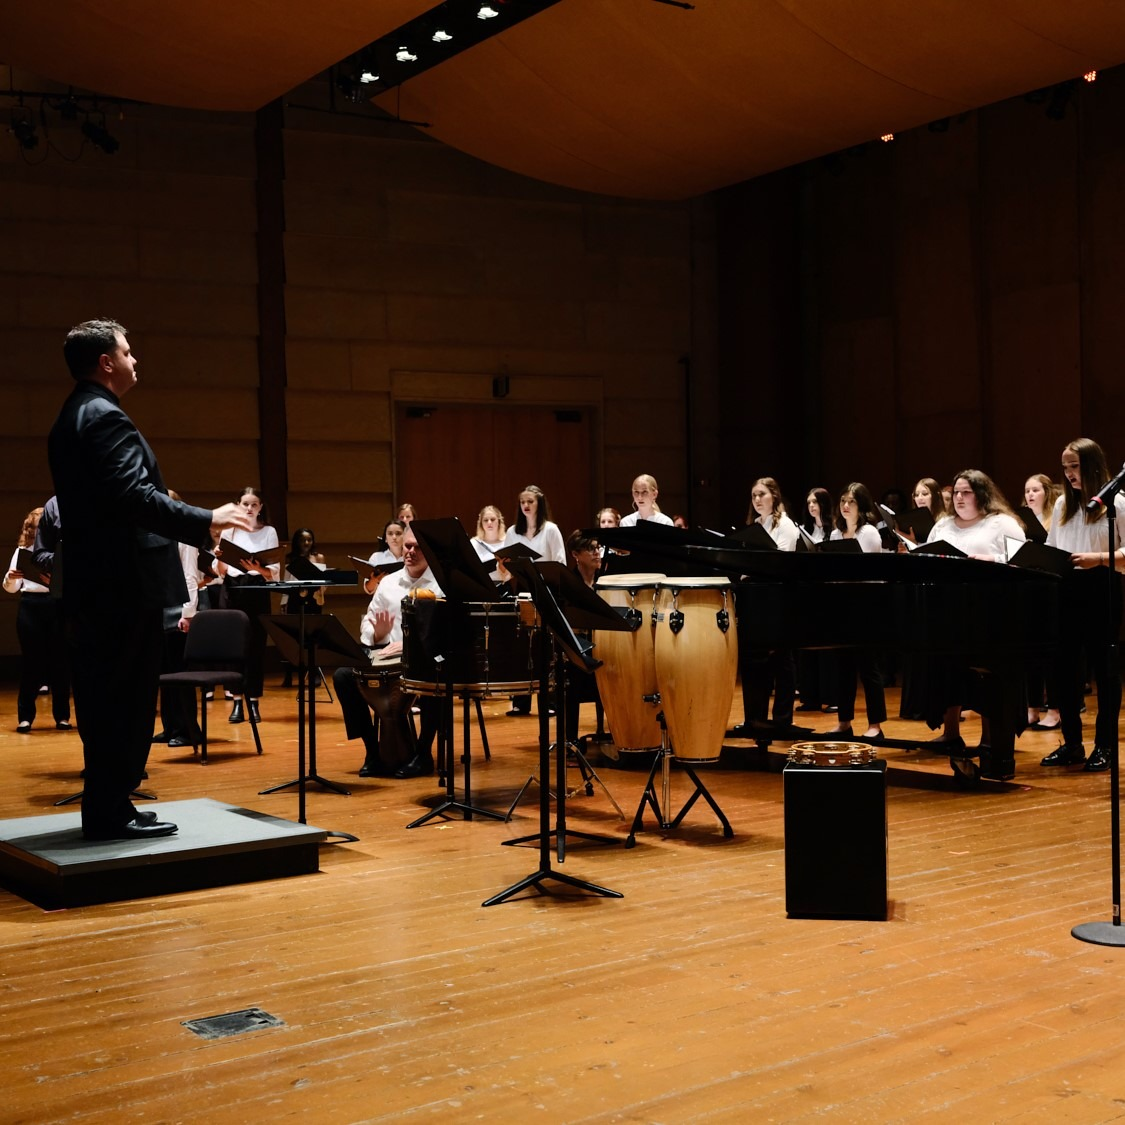 OSAI 2019 Institute Chorus Performances – Video